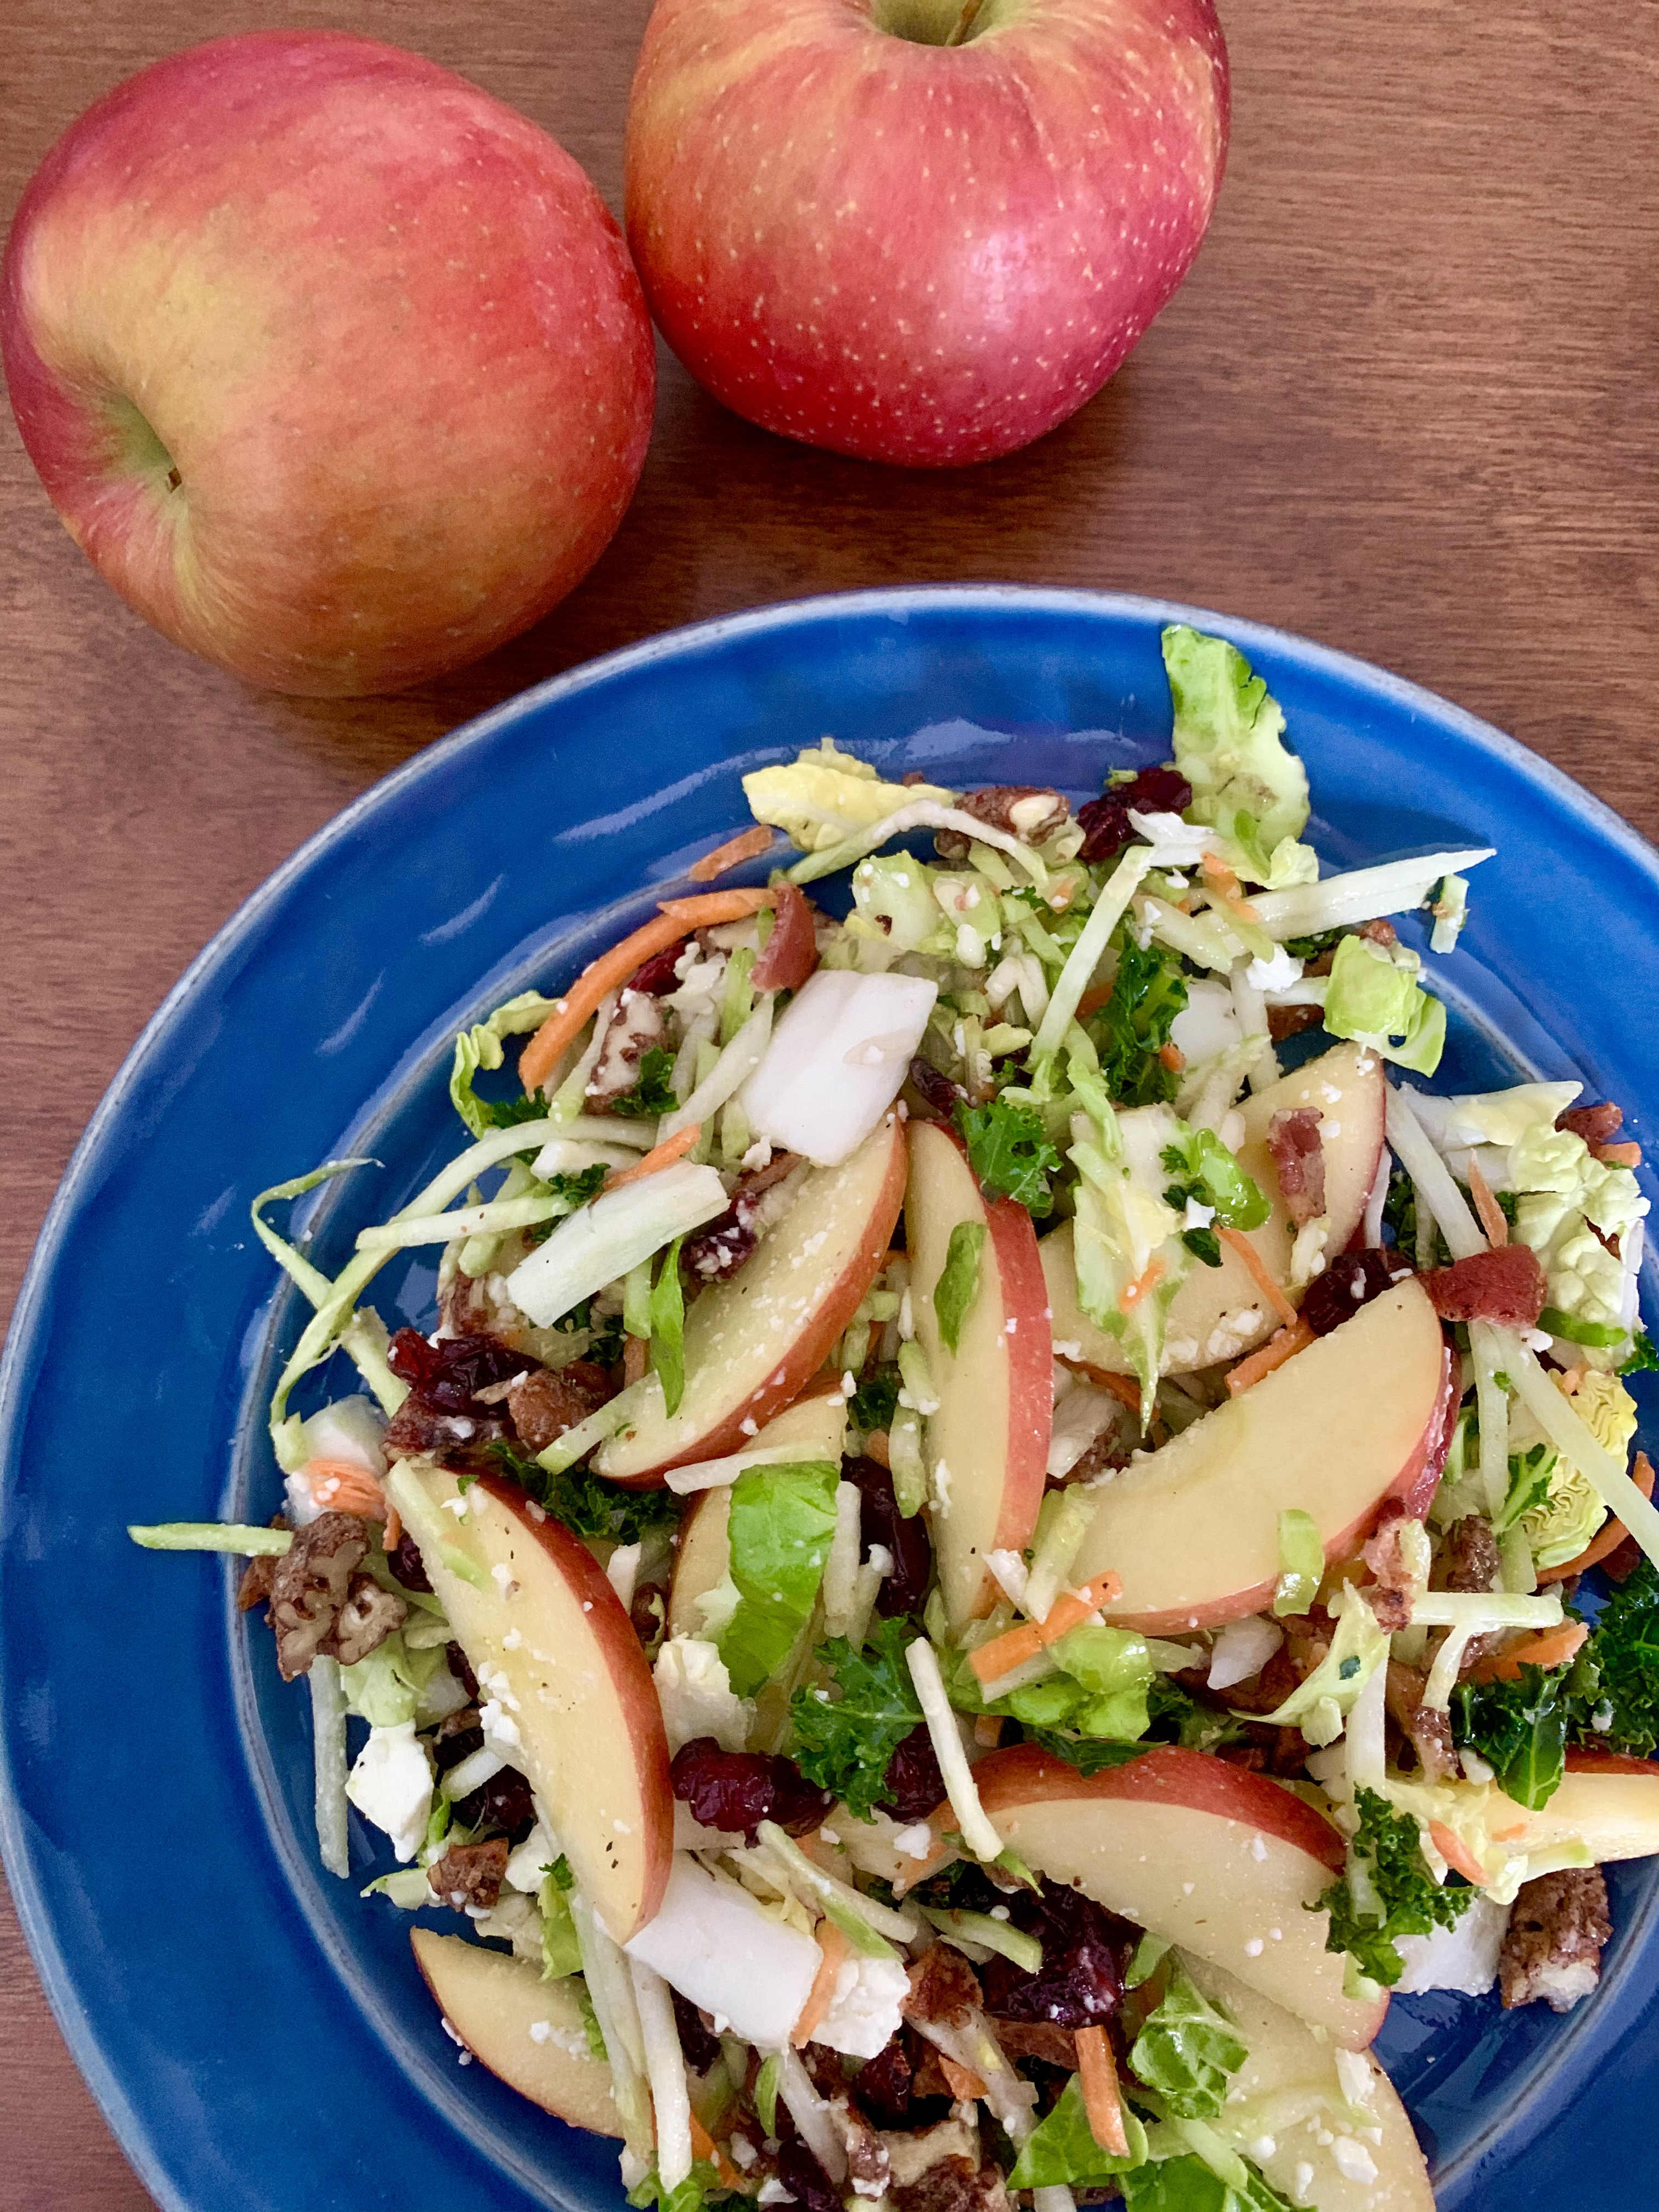 Super Foods Salad with EverCrisp® Apples, Feta and Pecans